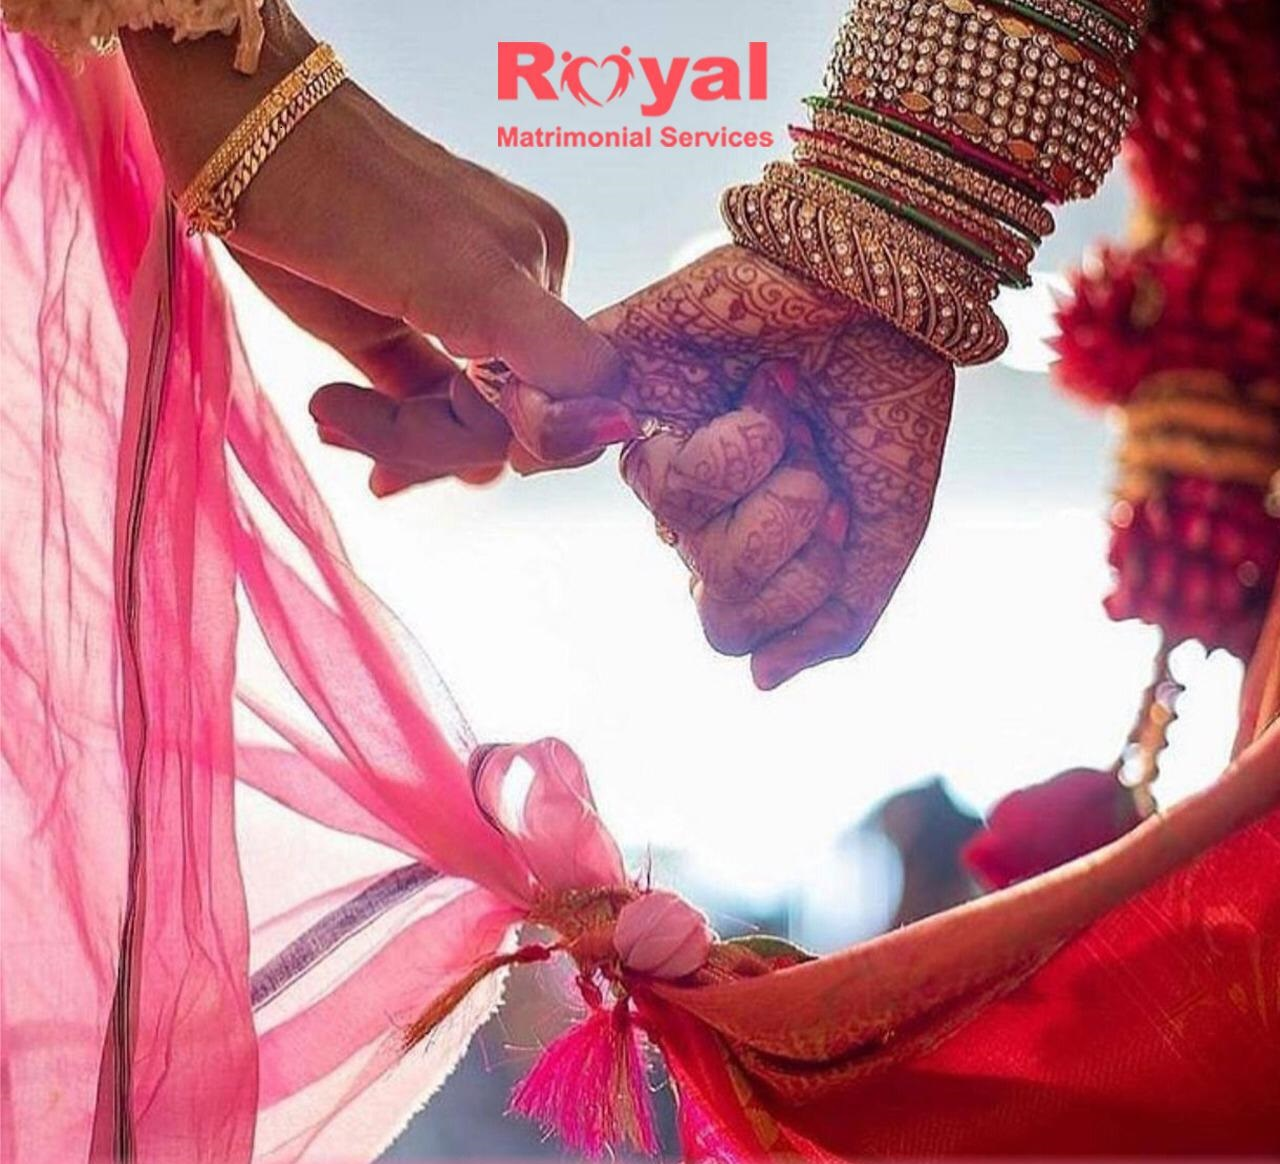 Royal Matrimonial Services